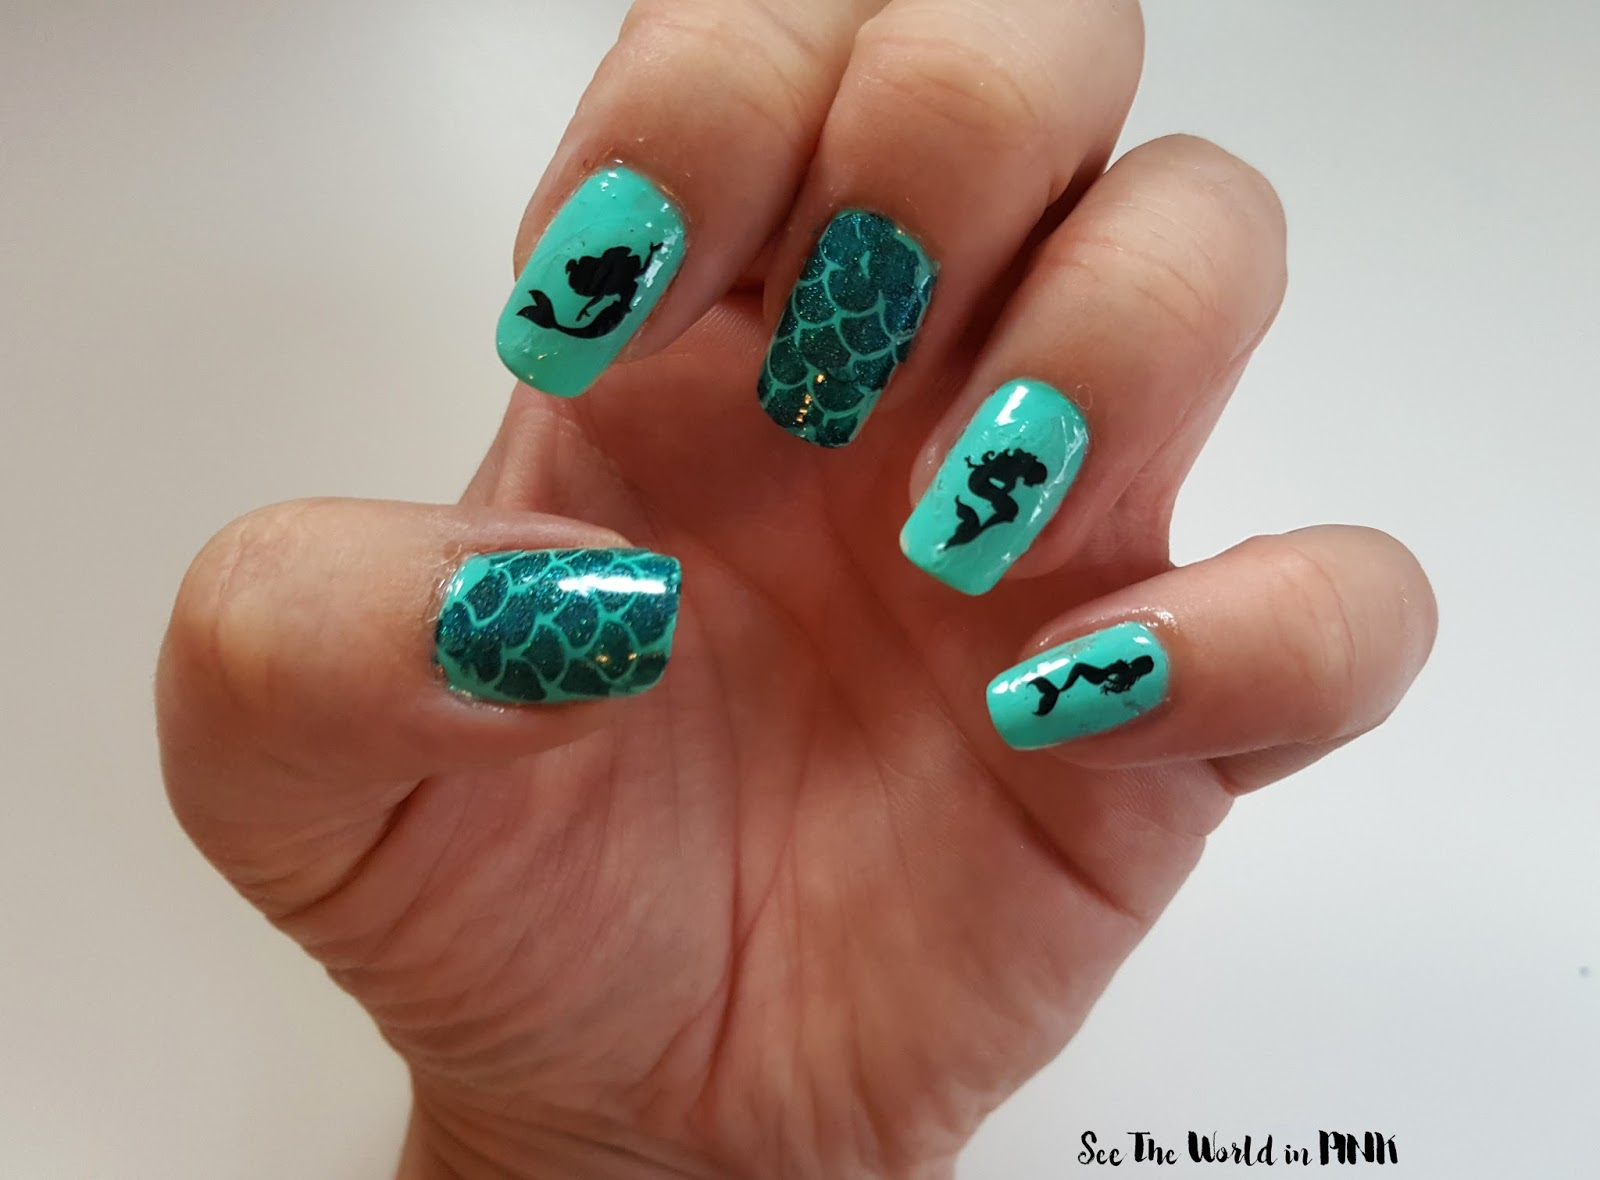 Manicure Monday - Mermaid Nails!